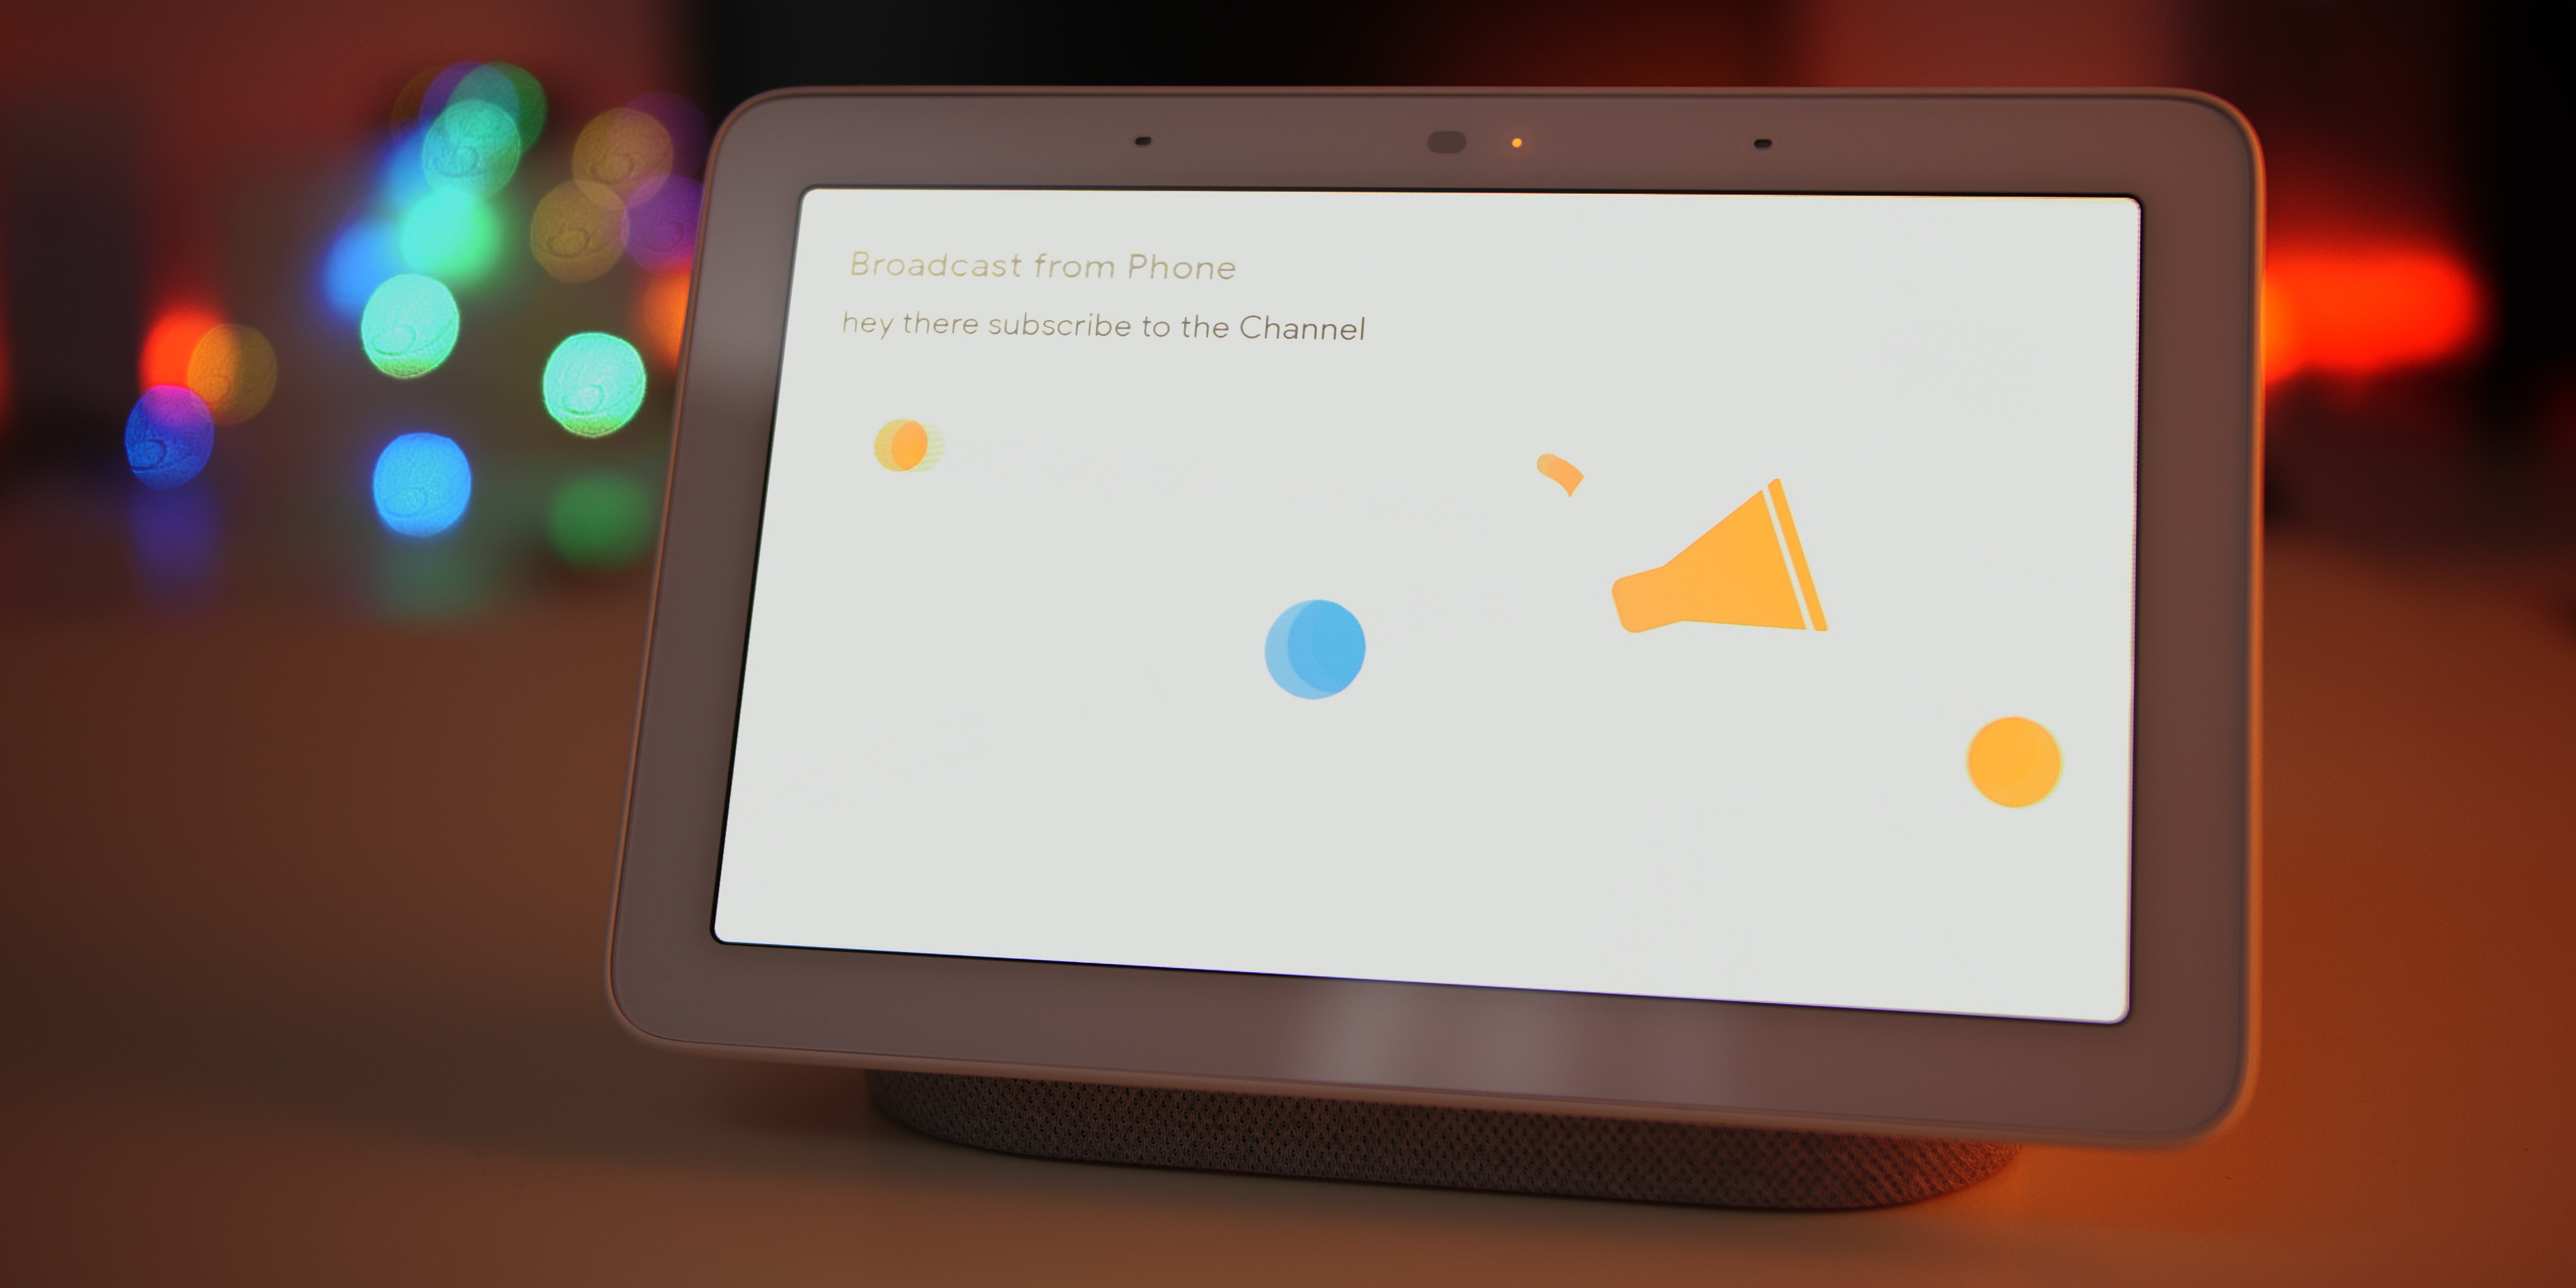 15 Google Home Hub tips and tricks to get started [Video] - 9to5Google